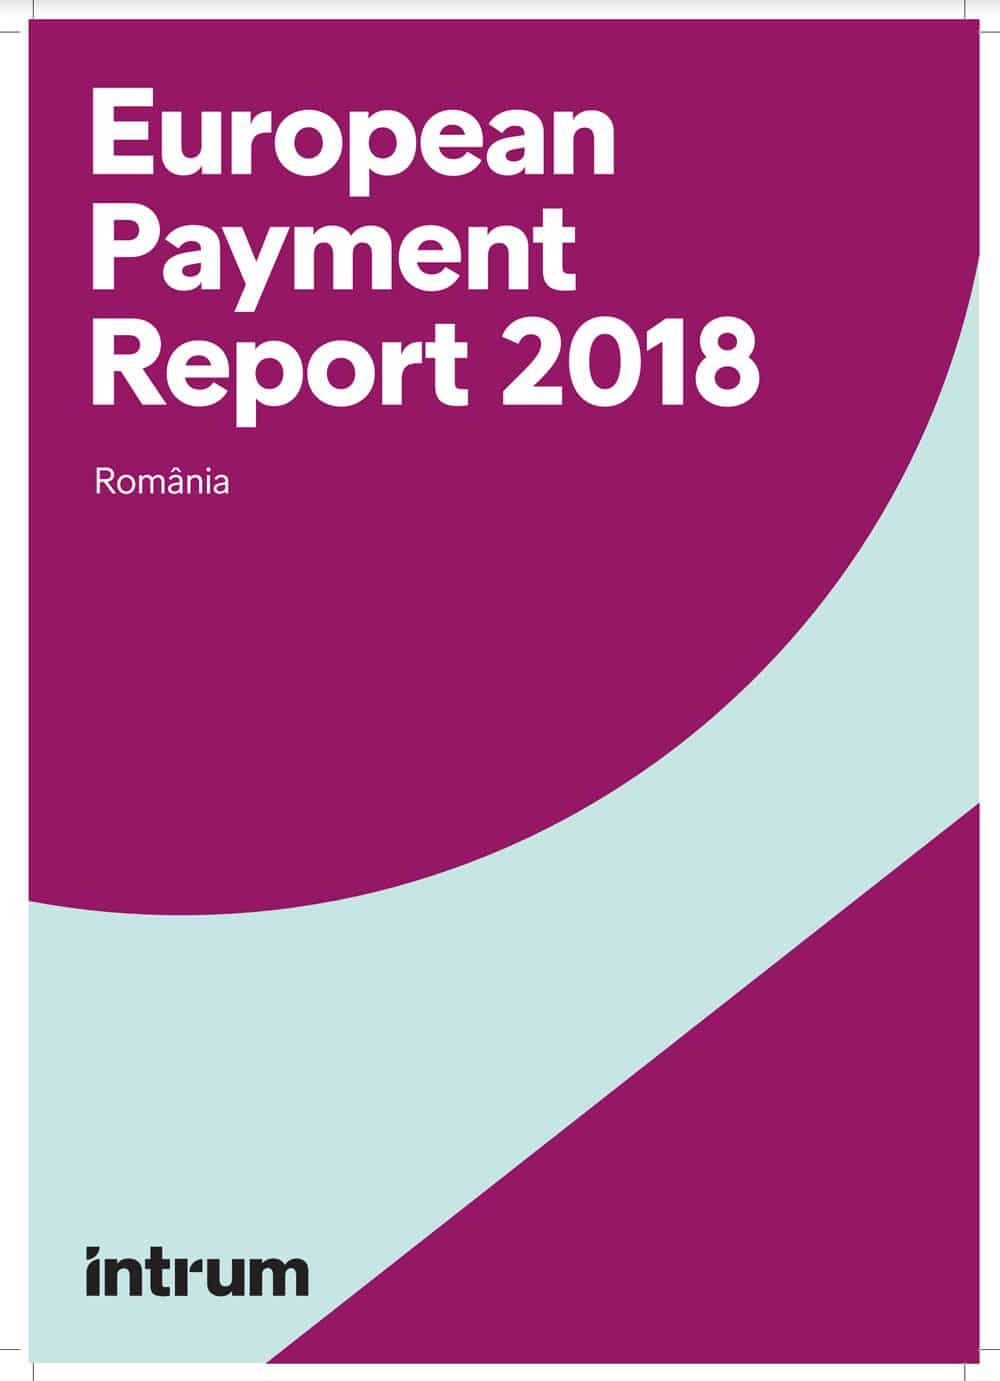 european-payment-report-romania